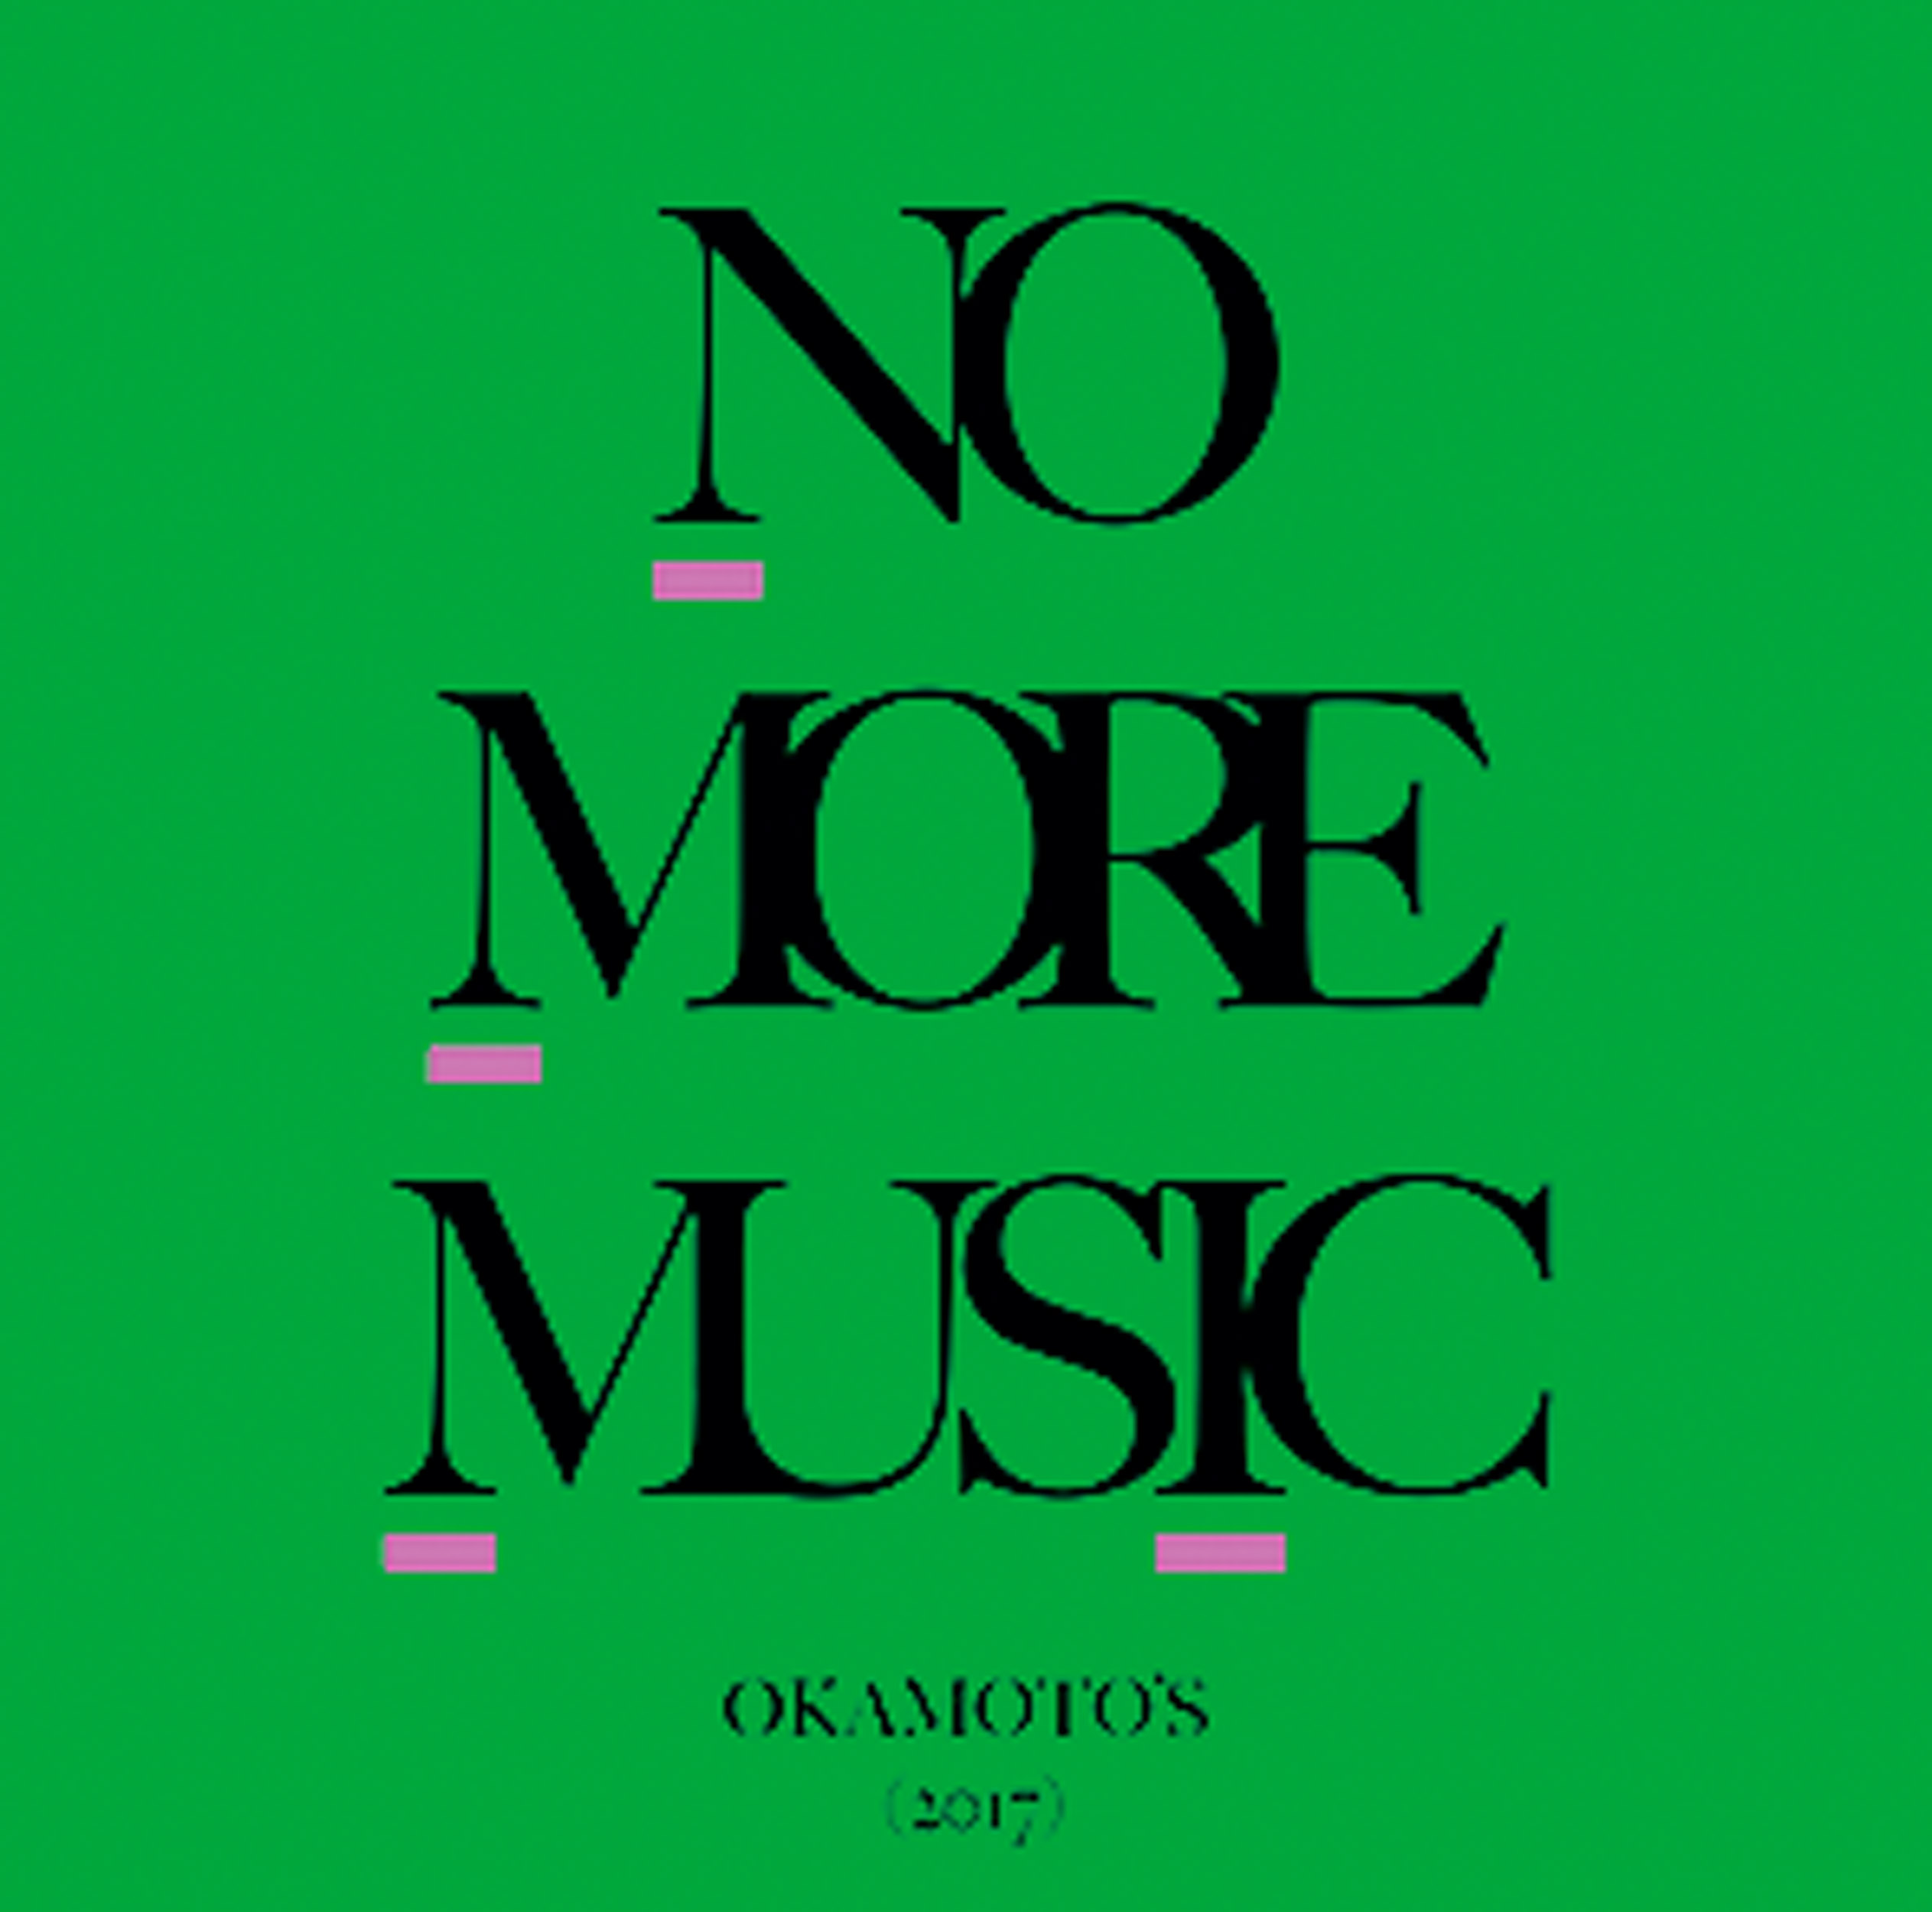 gz09_okamotos_NO MORE MUSIC共通JK